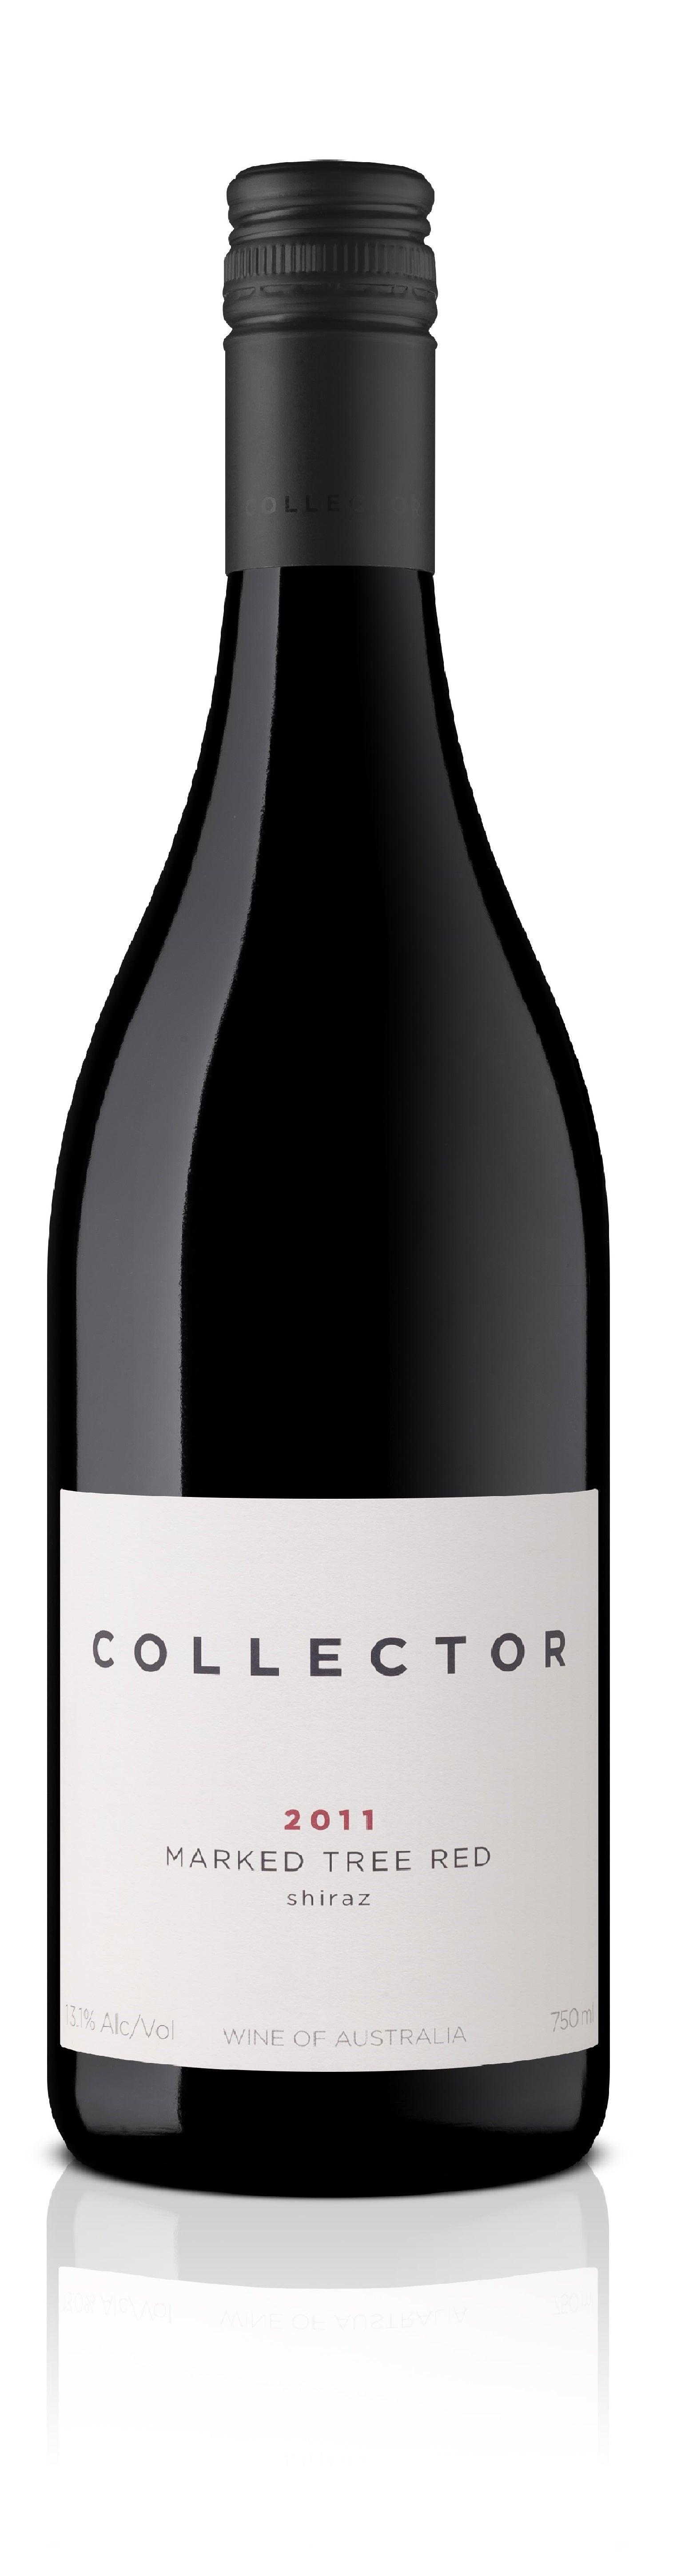 Museum Release - Marked Tree Red Shiraz 2011 - Cellar Door Exclusive